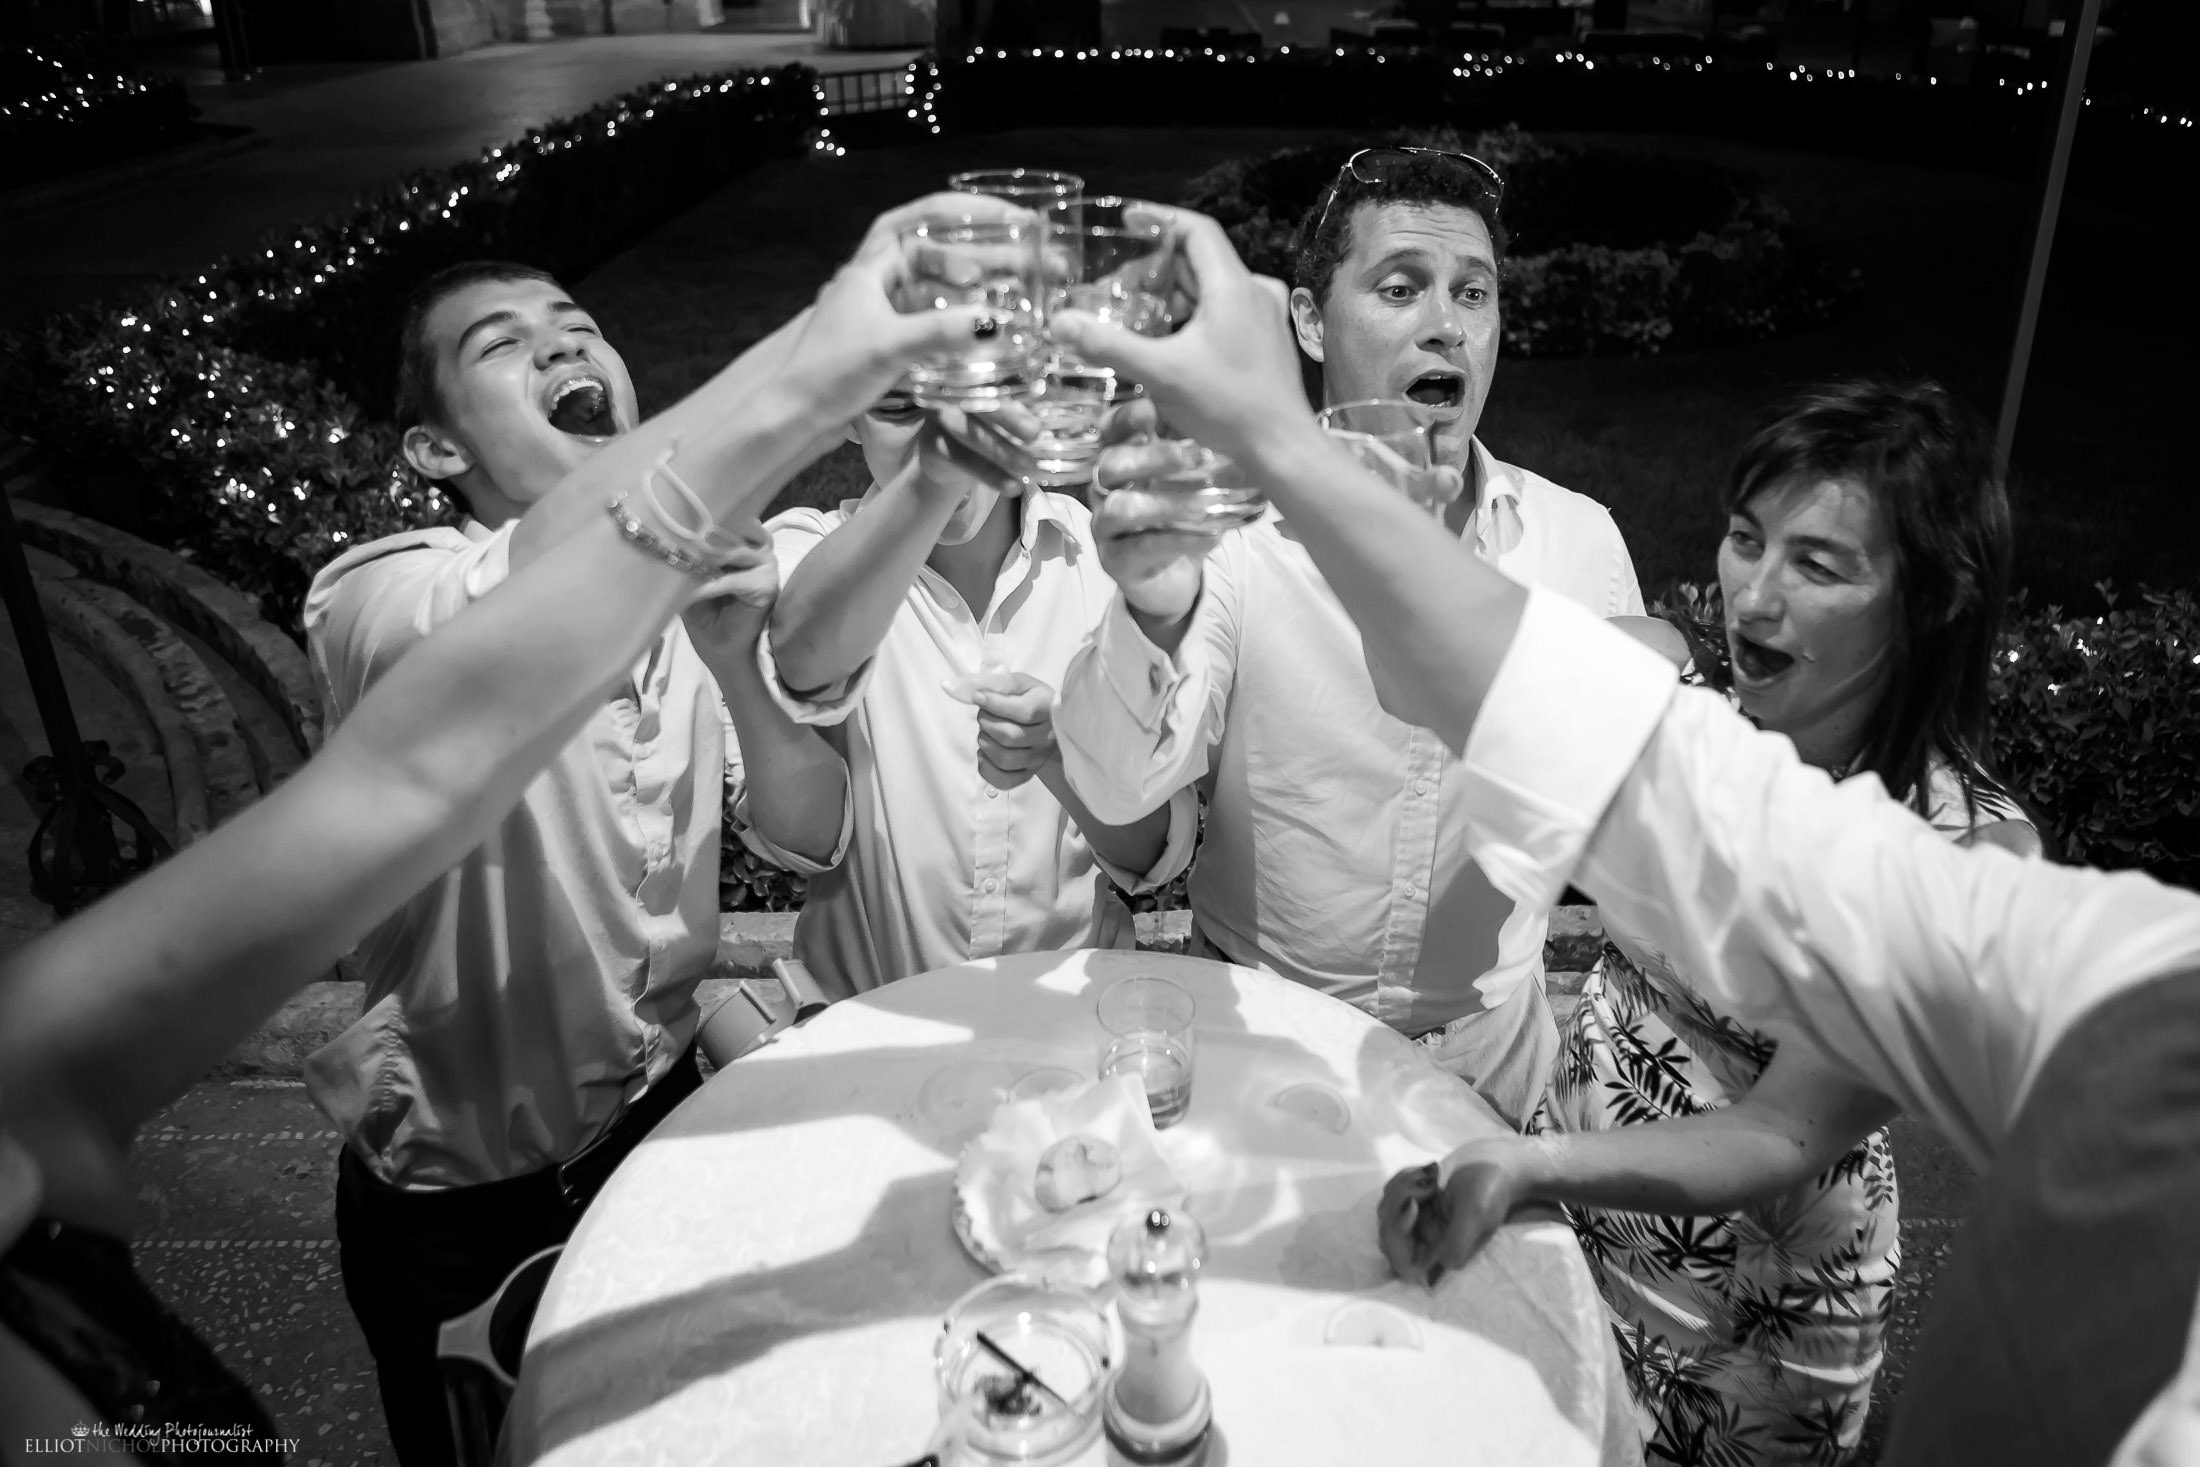 Wedding guests having fun while drinking shots during the wedding reception party. Photo by Elliot Nichol Photography.